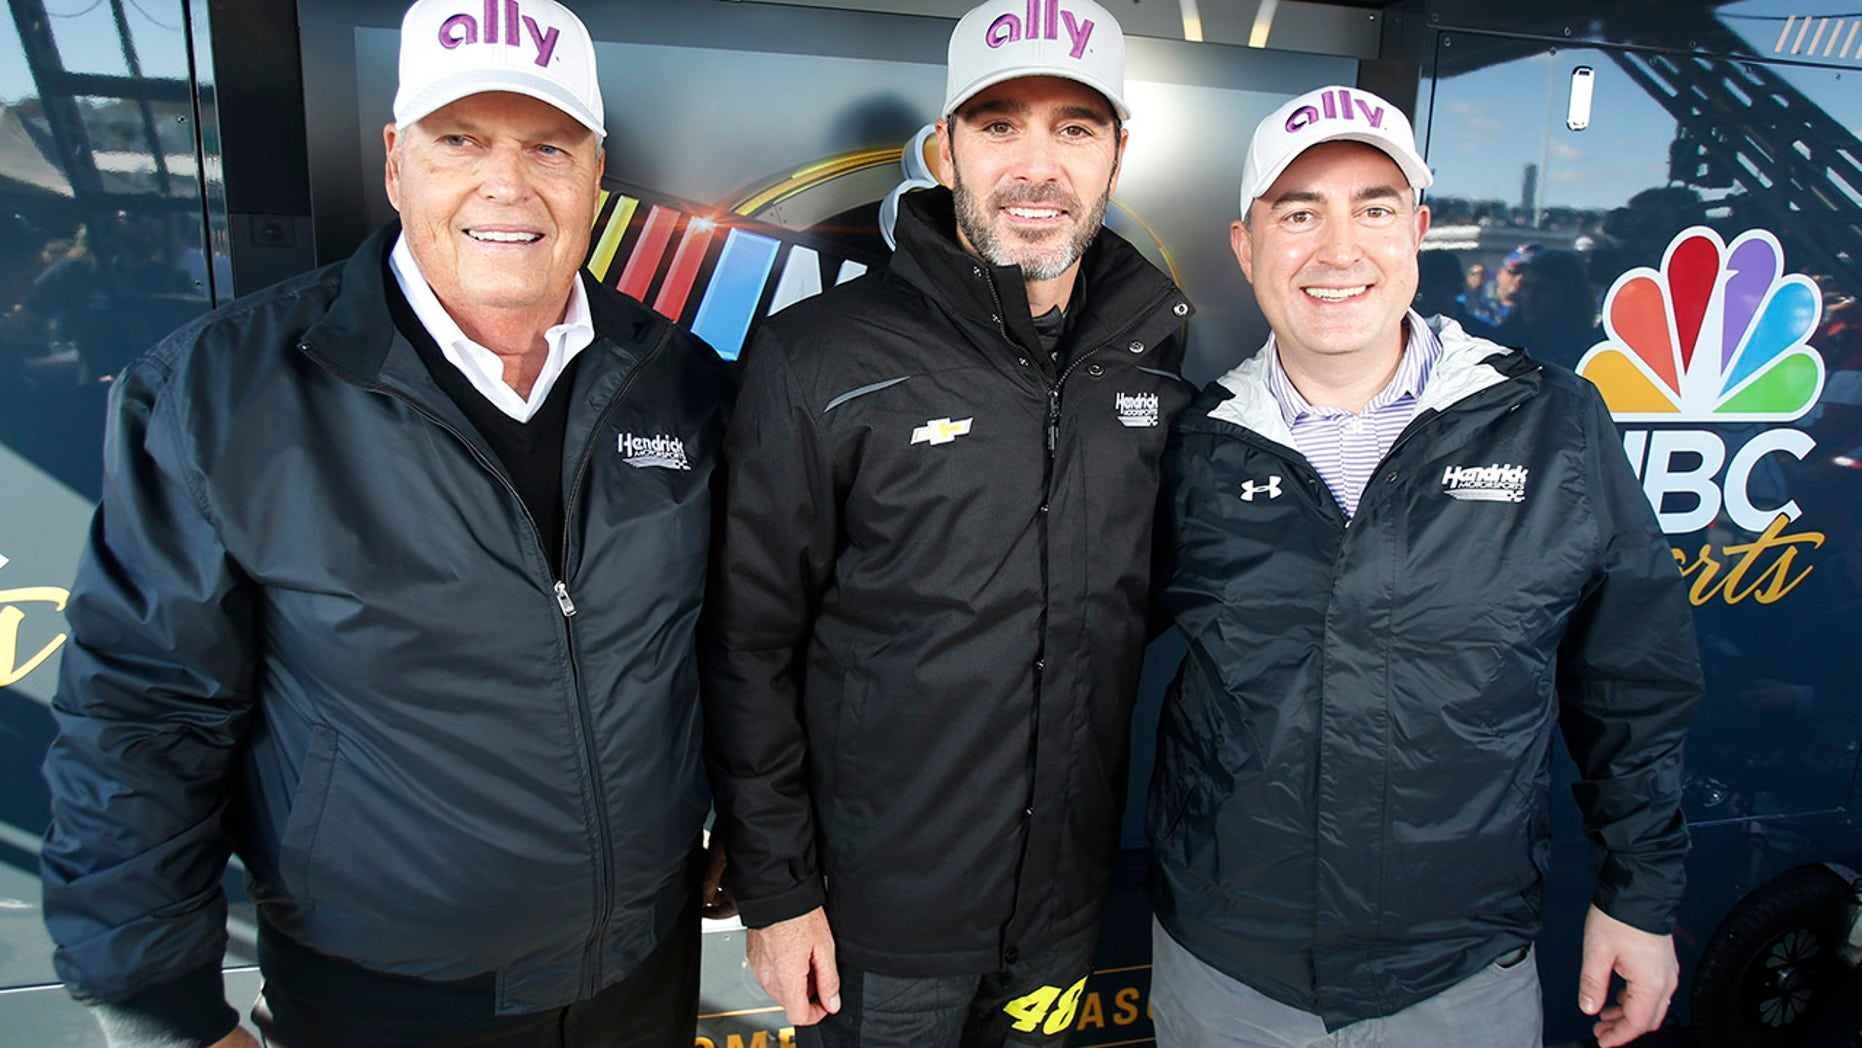 Ally Financial becomes Johnson's primary sponsor for 2019, 2020